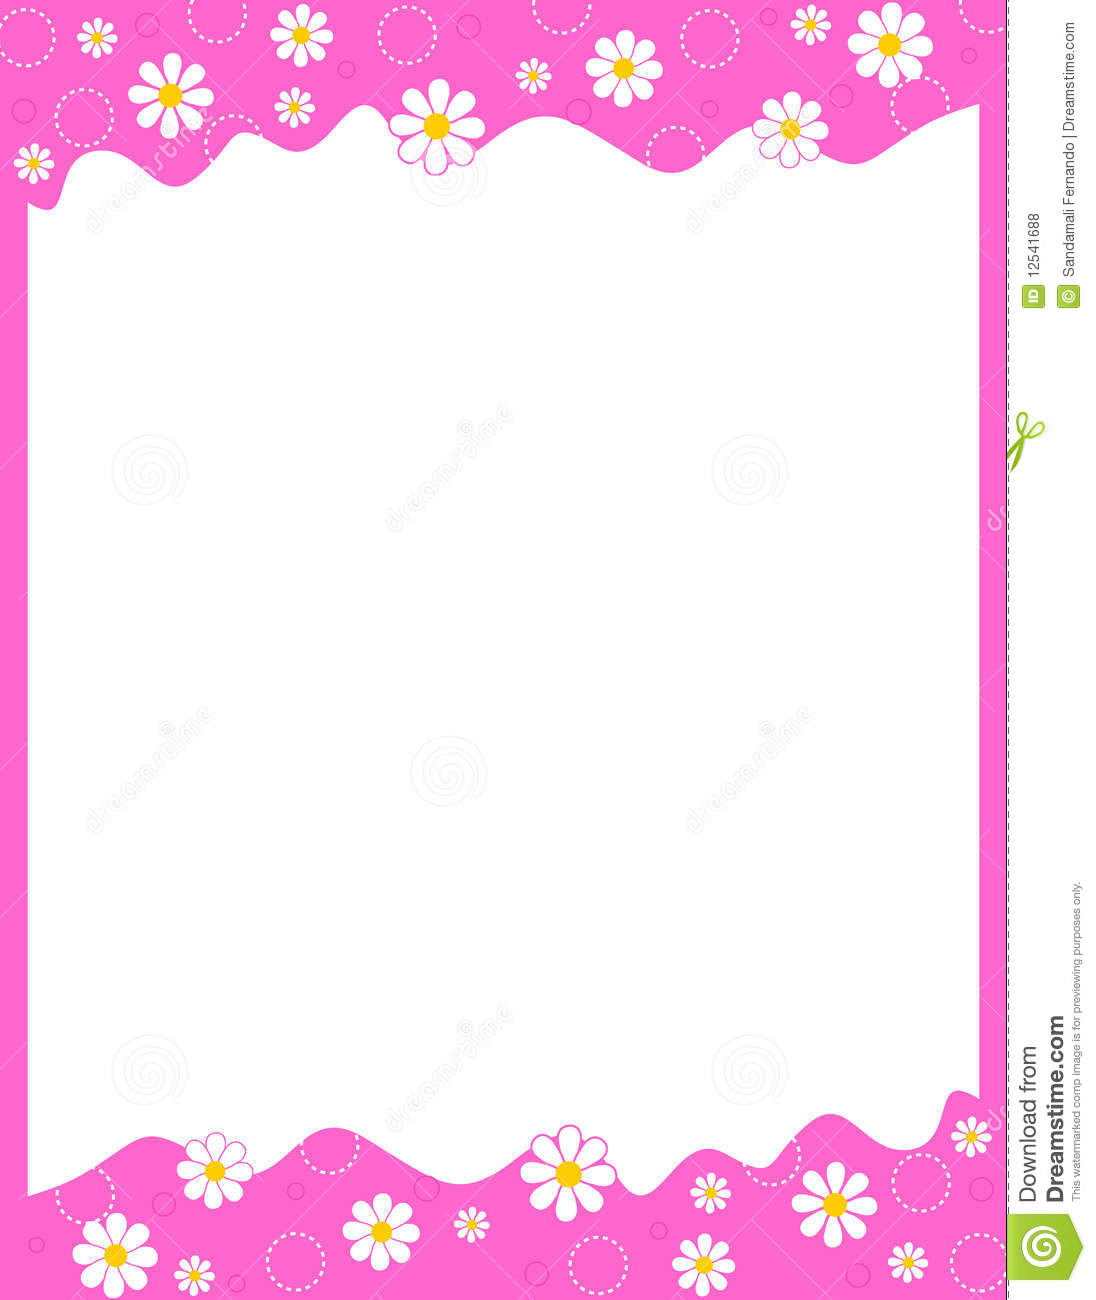 Floral Border stock vector. Illustration of cute, elegant ...